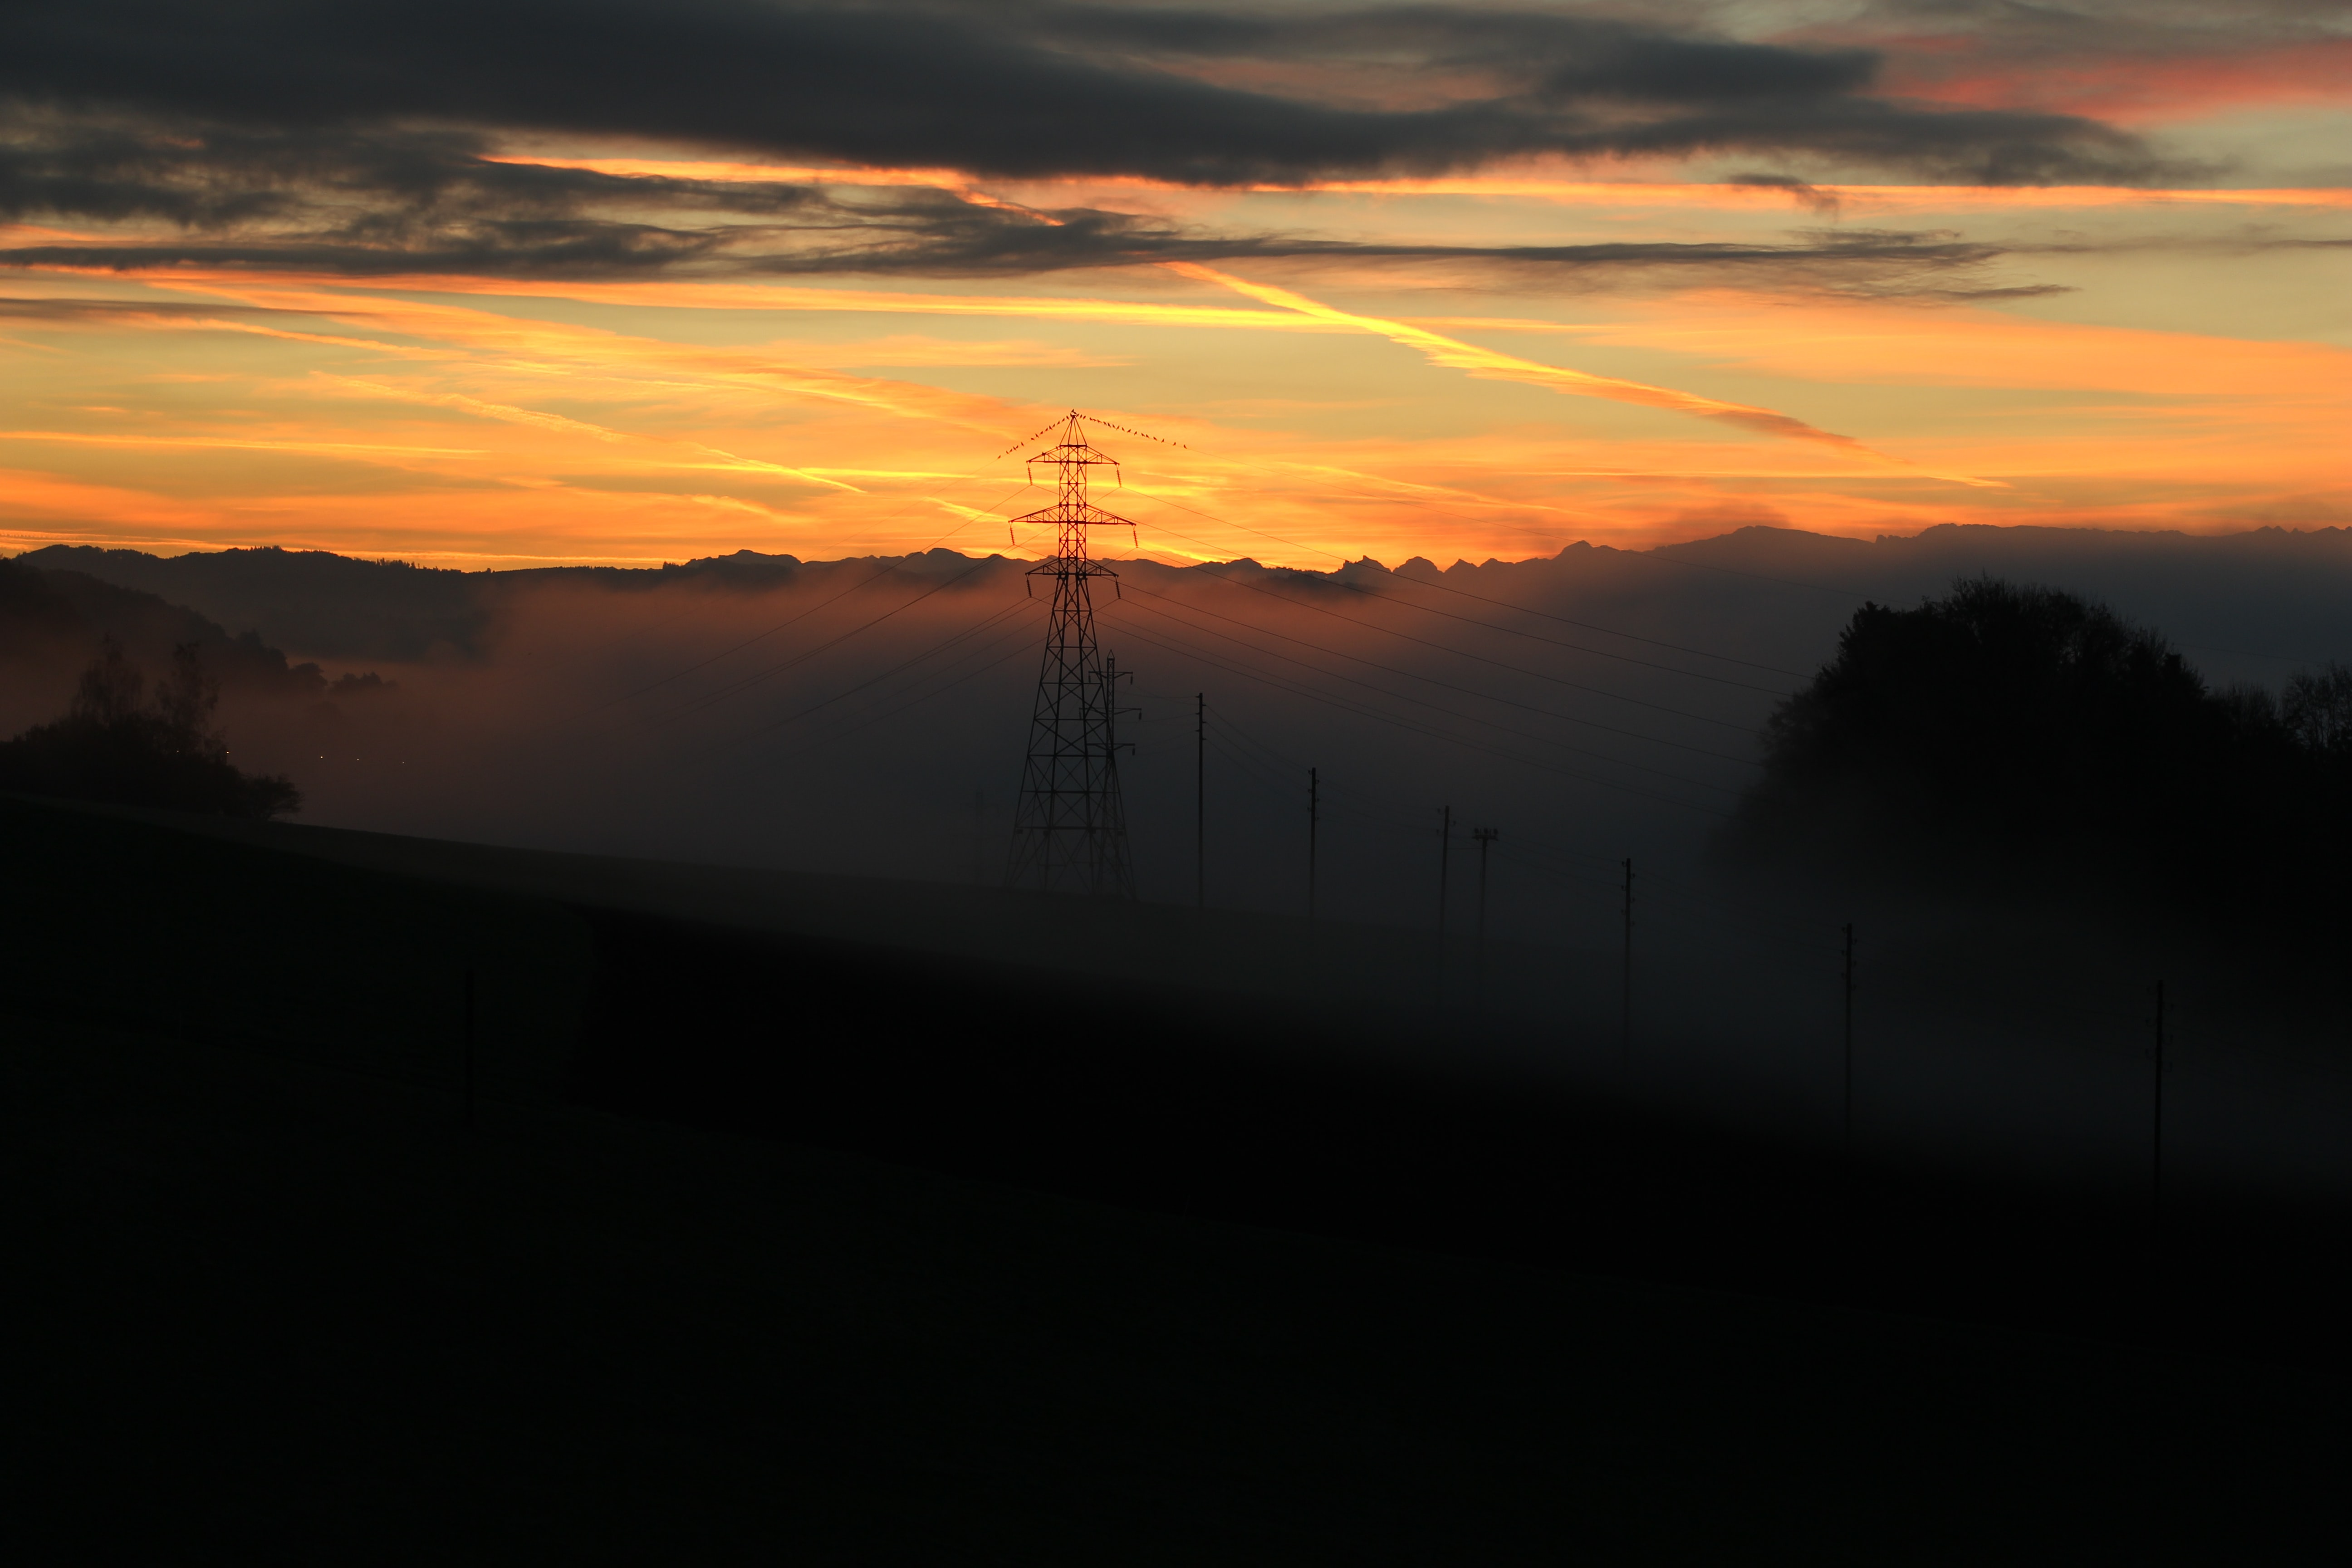 Pylons in the distance of a cloudy sunset scene in Bern